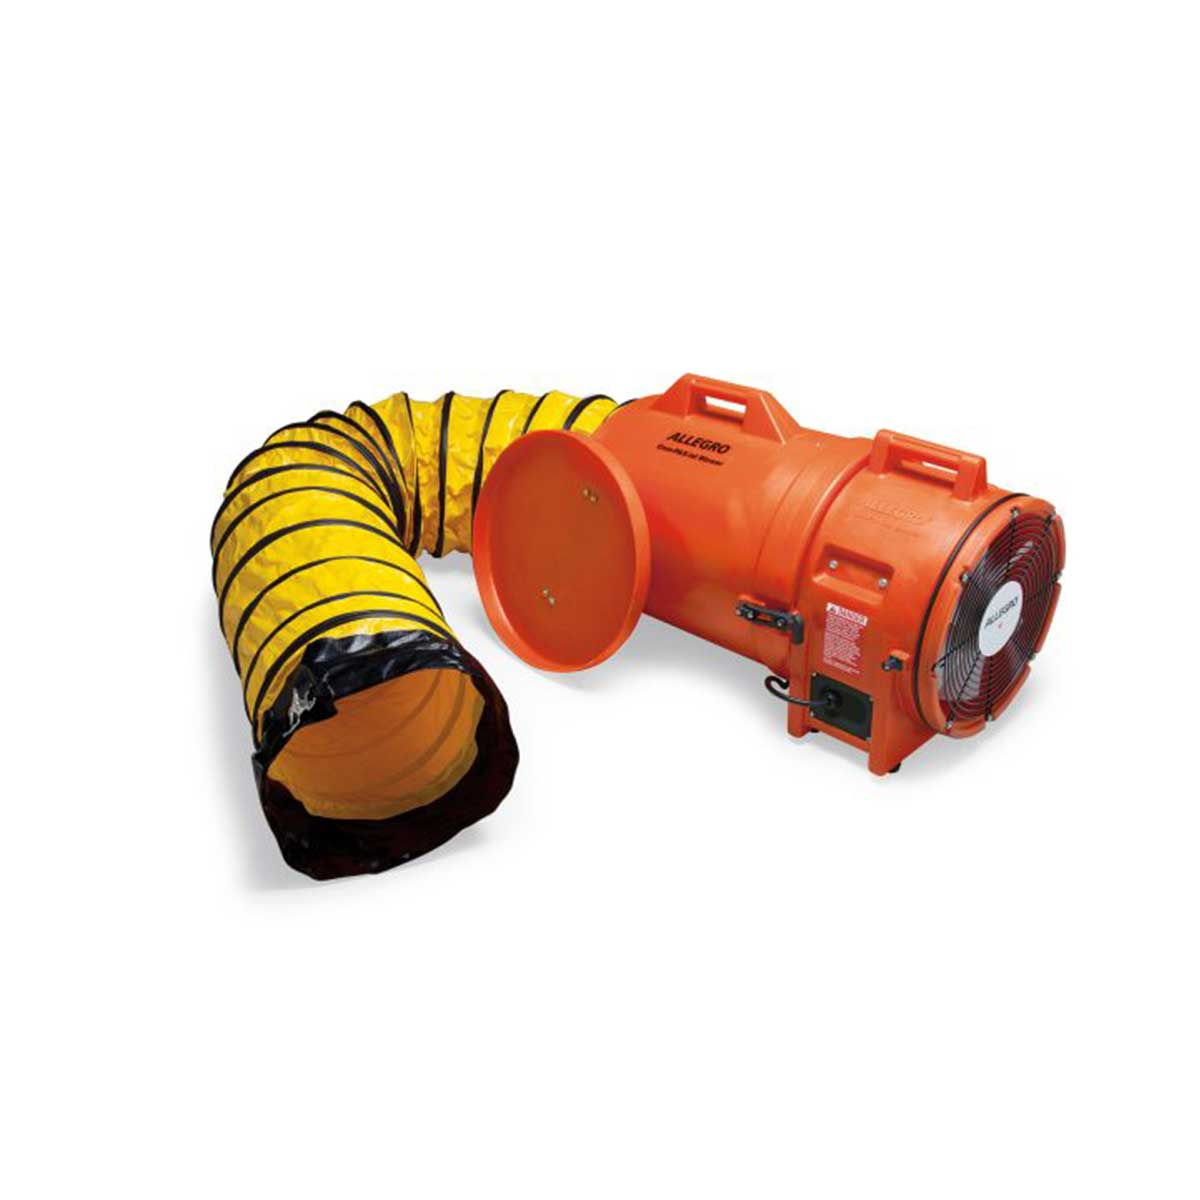 12″ Axial DC Plastic Blower w/ Canister & 25′ Ducting, 12V. Part: ALL-9546‐25. Pkg: